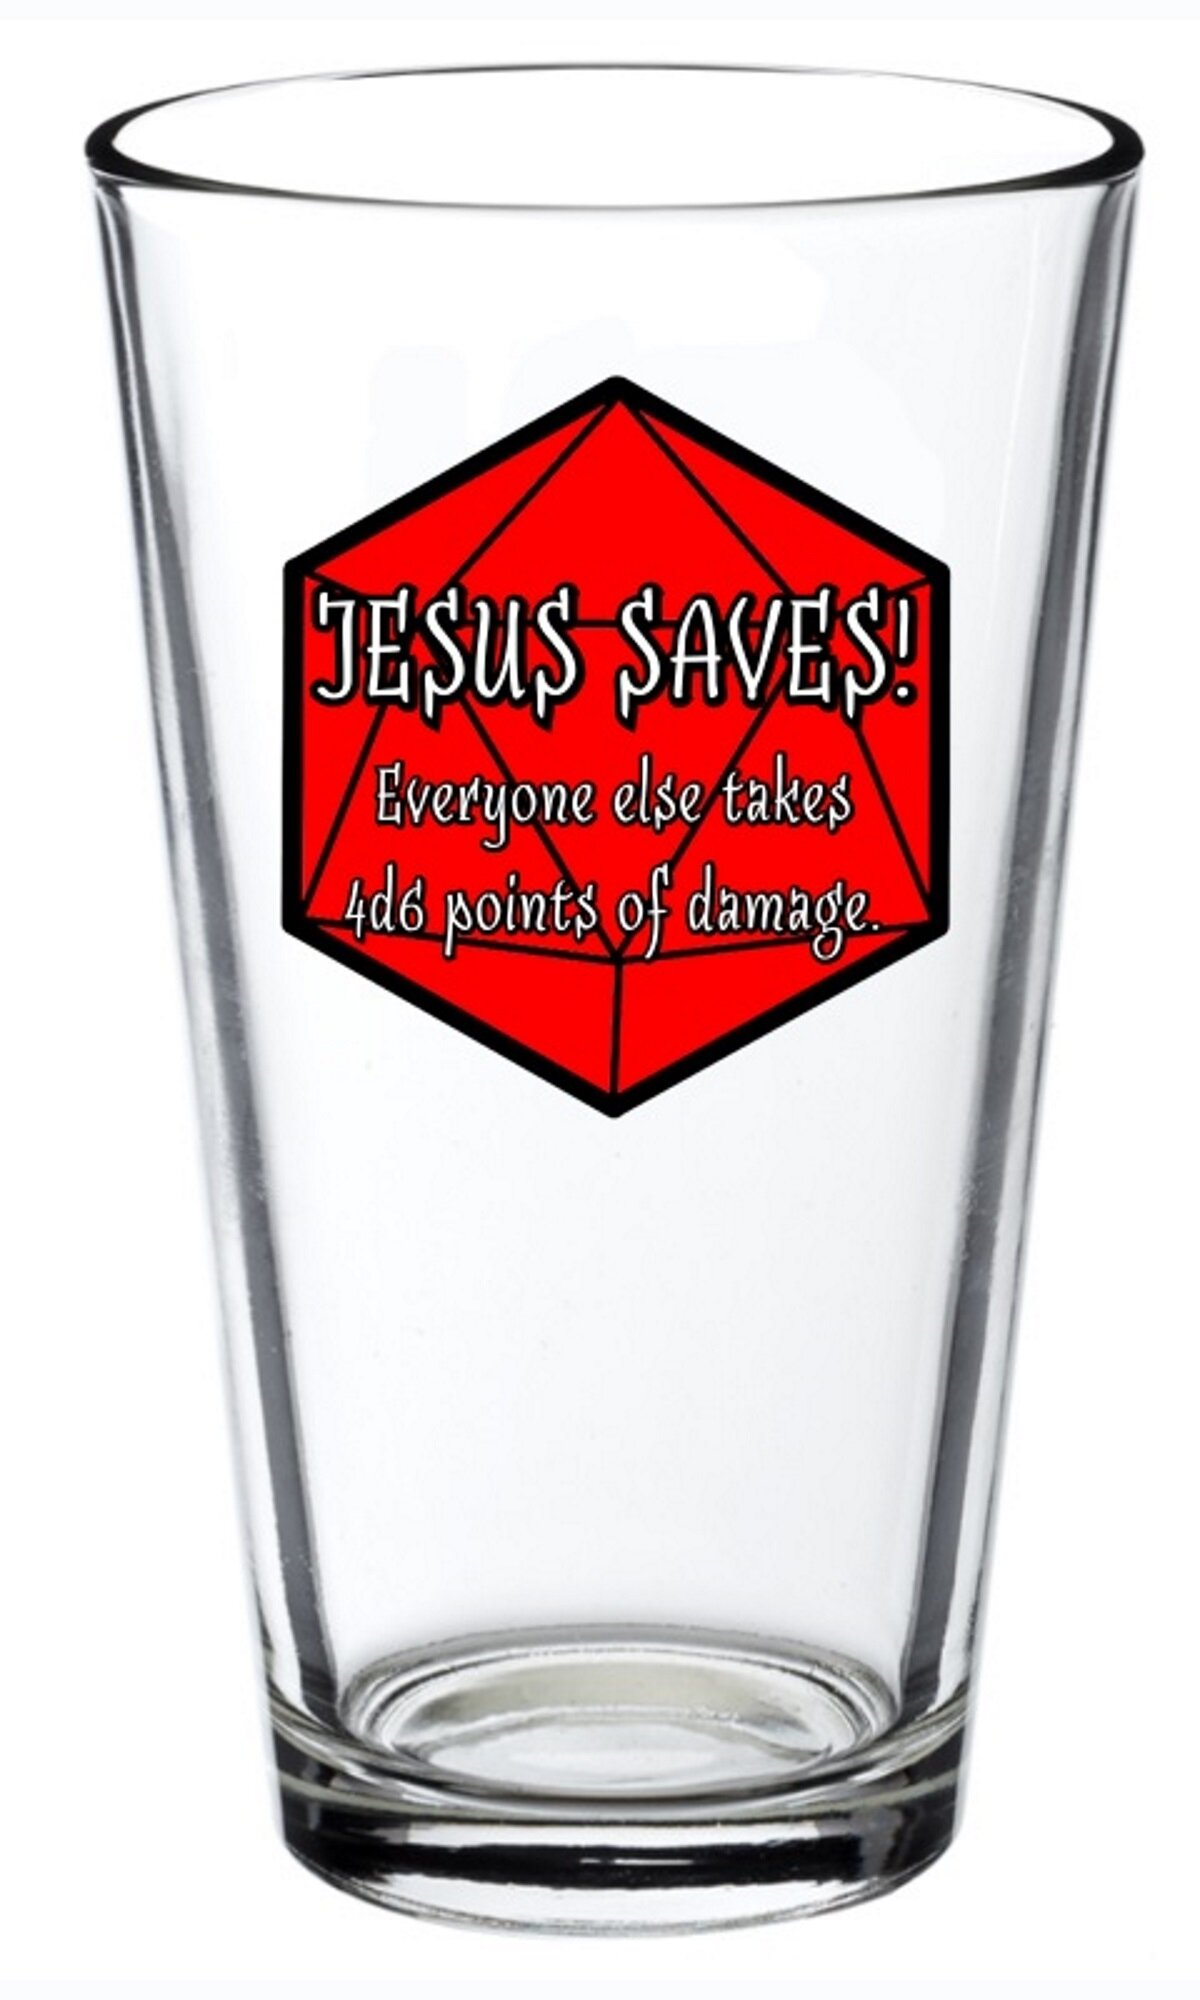 Jesus Saves! Everyone Else Takes 4d6 Points of Damage.